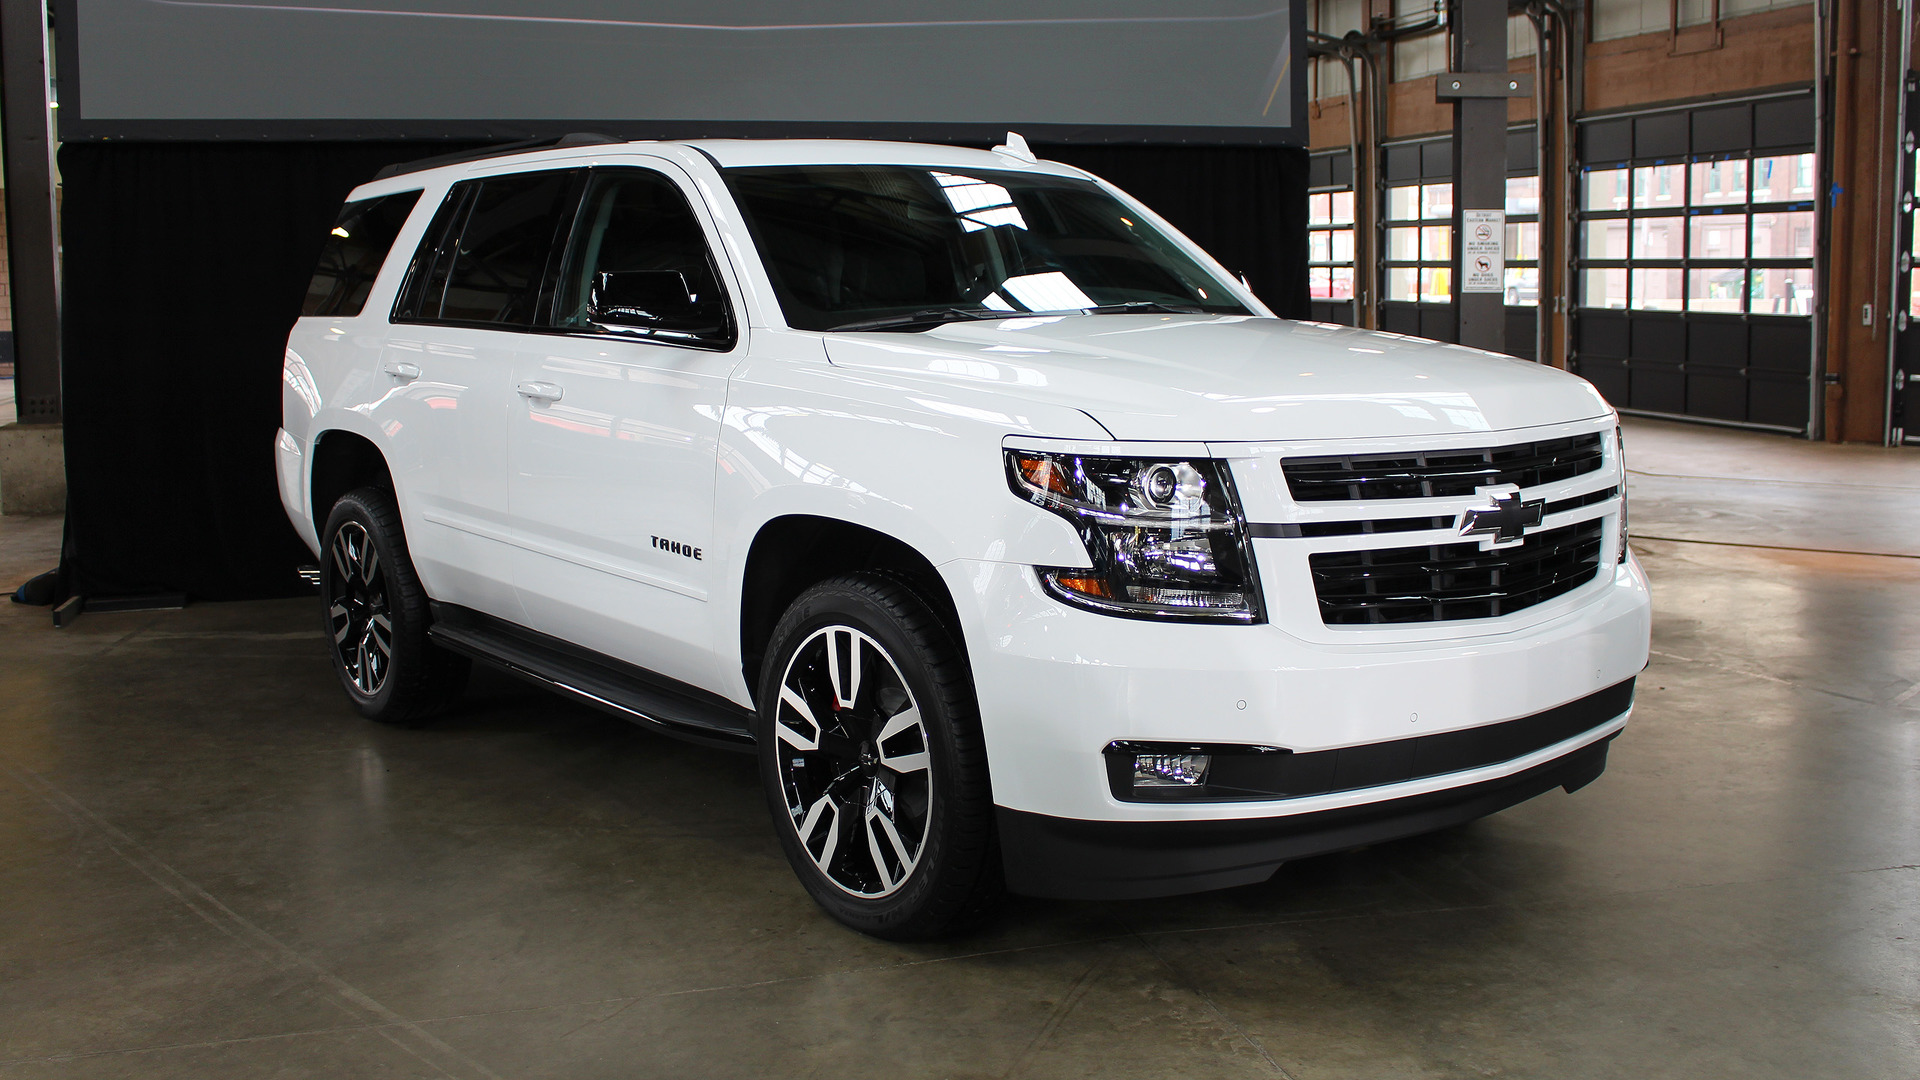 2018 Chevy Tahoe RST Will Do 0-60 In 5.7 Seconds